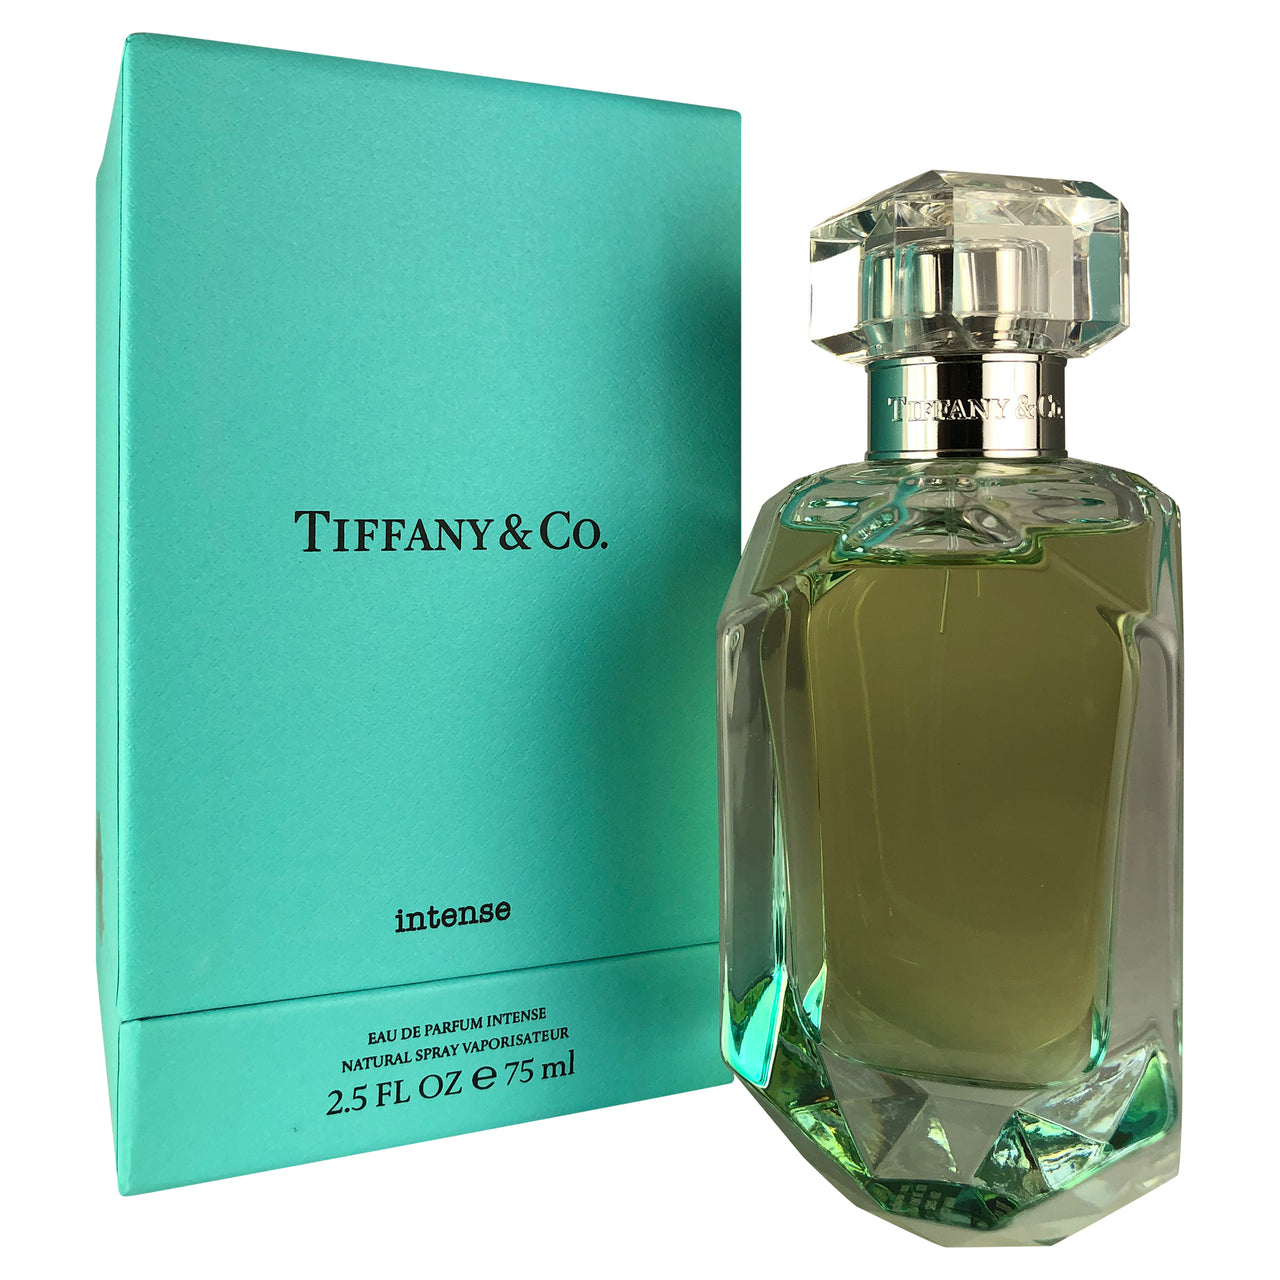 Tiffany & Co Intense For Women 2.5 oz Eau De Parfum Spray